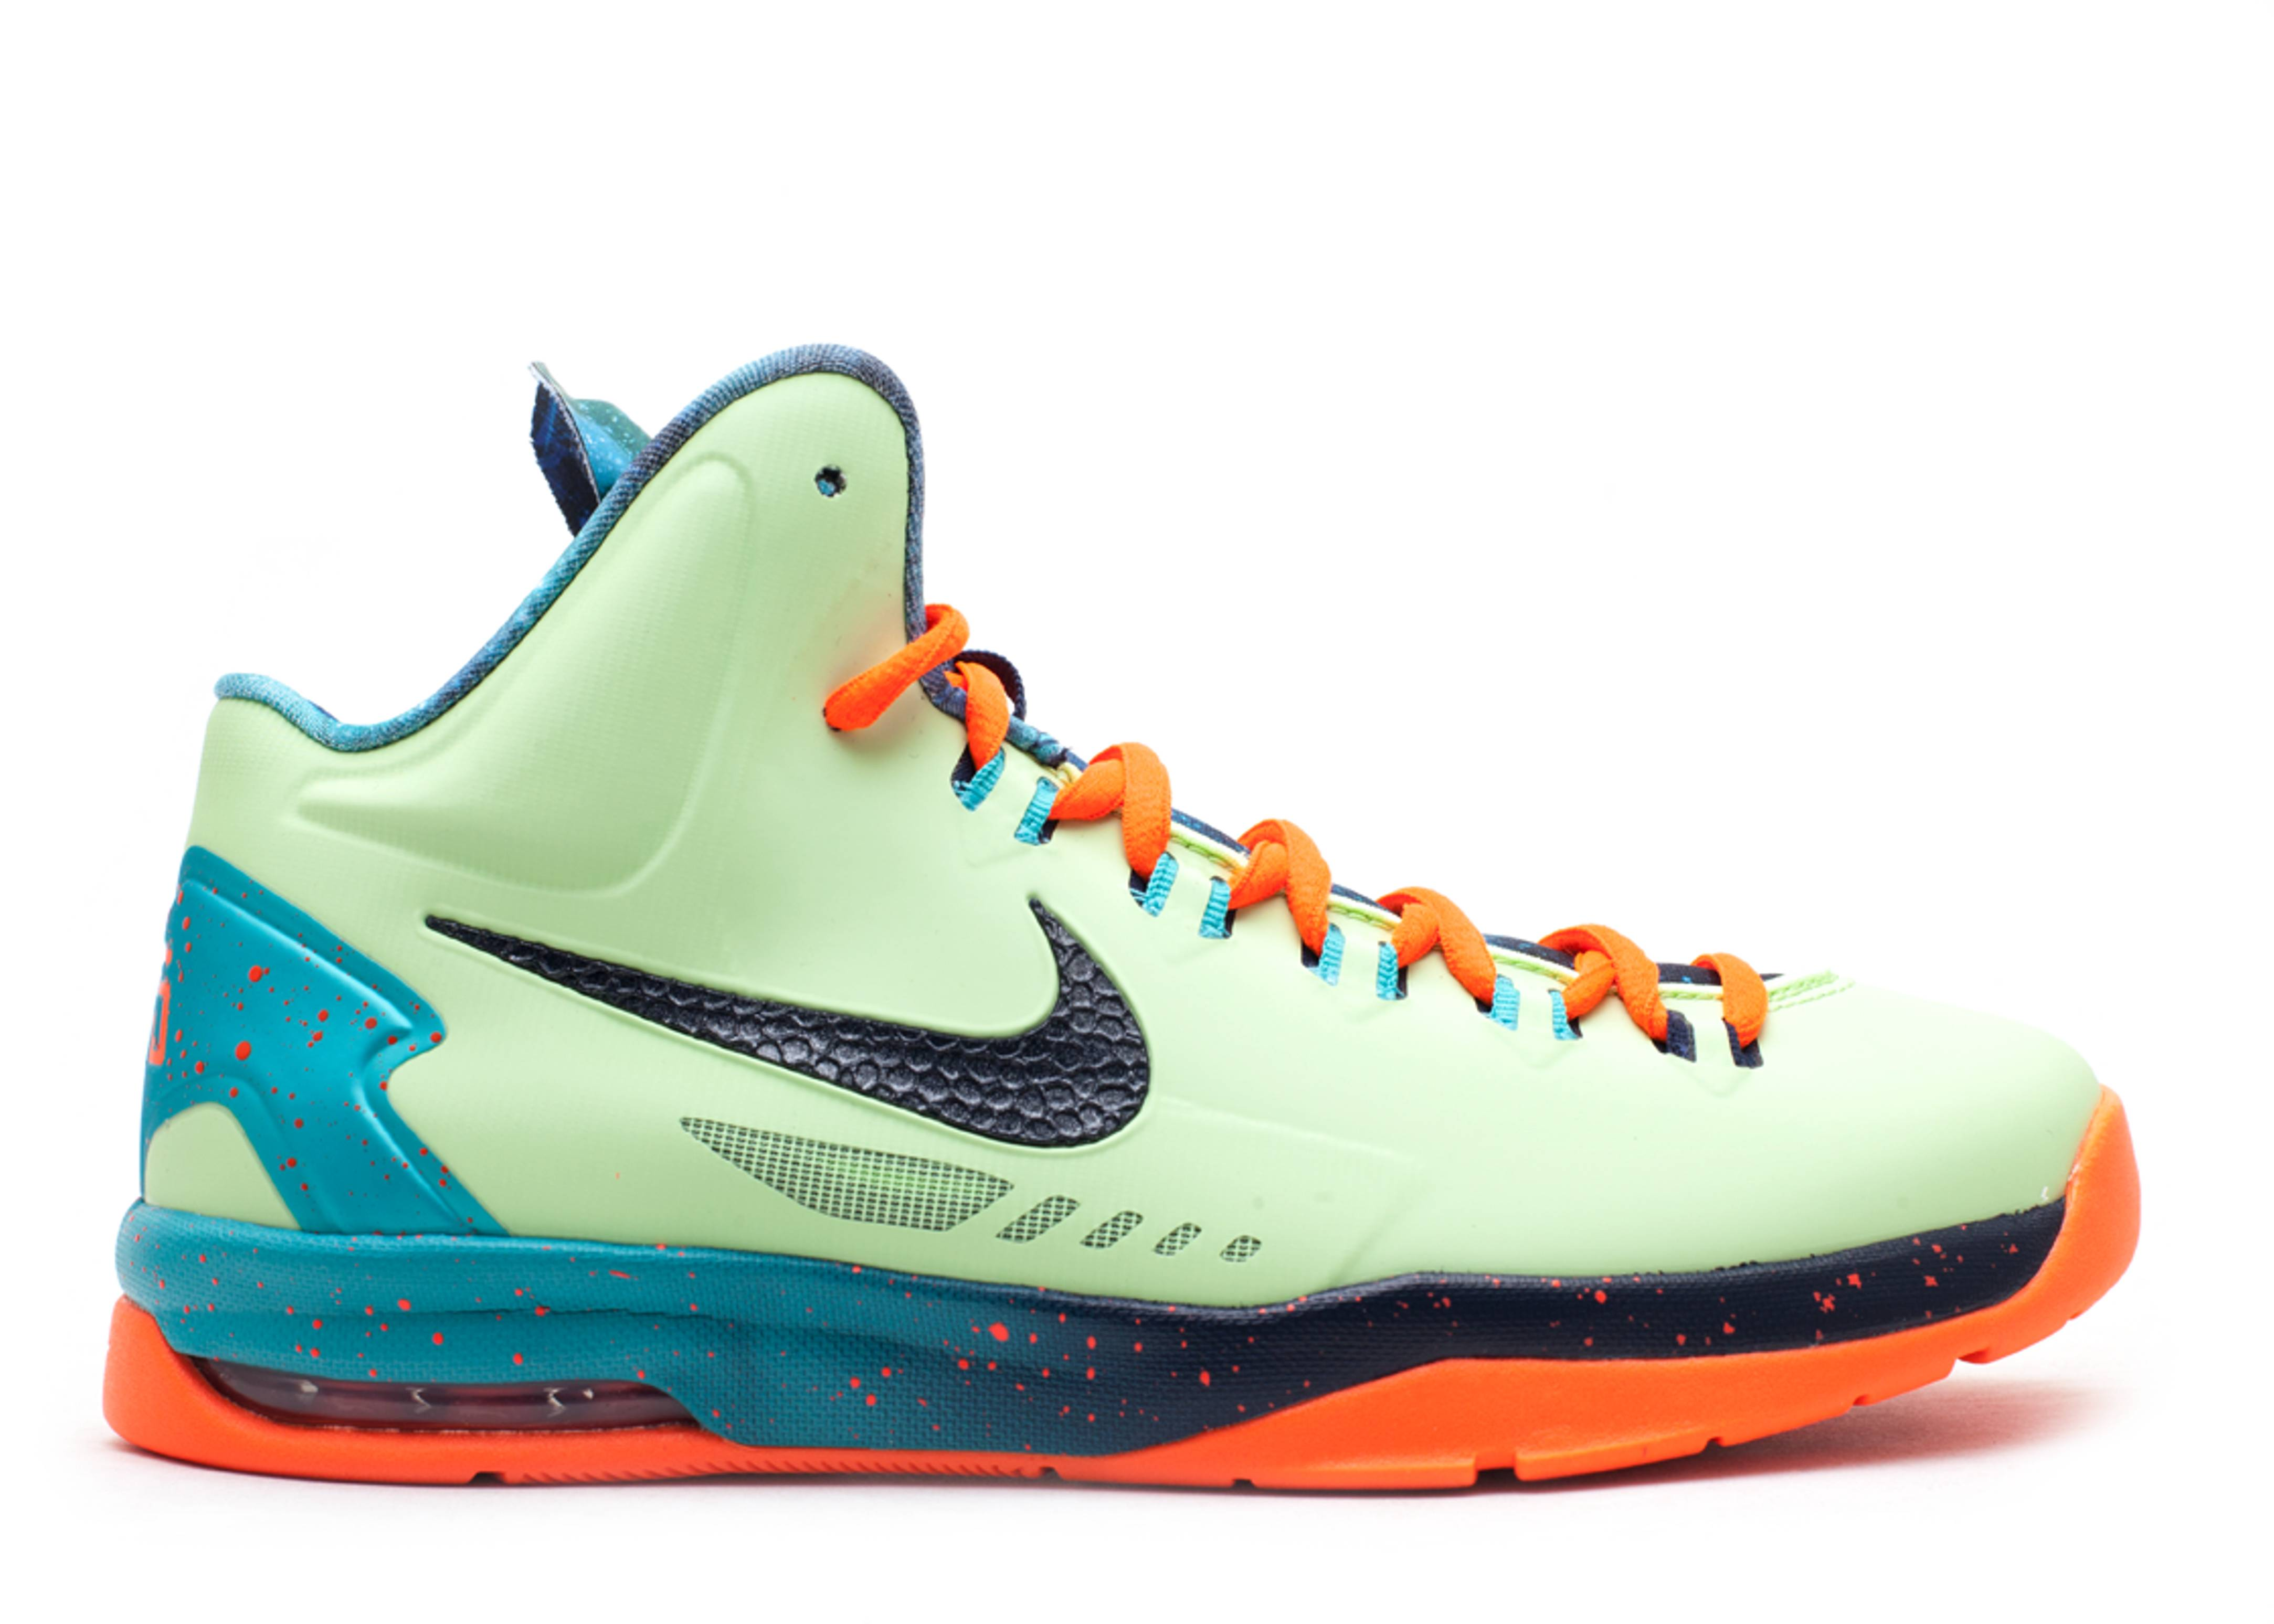 KD 5 (GS) 'Extraterrestrial' - 555641-301 - Size 5 - HUssPA